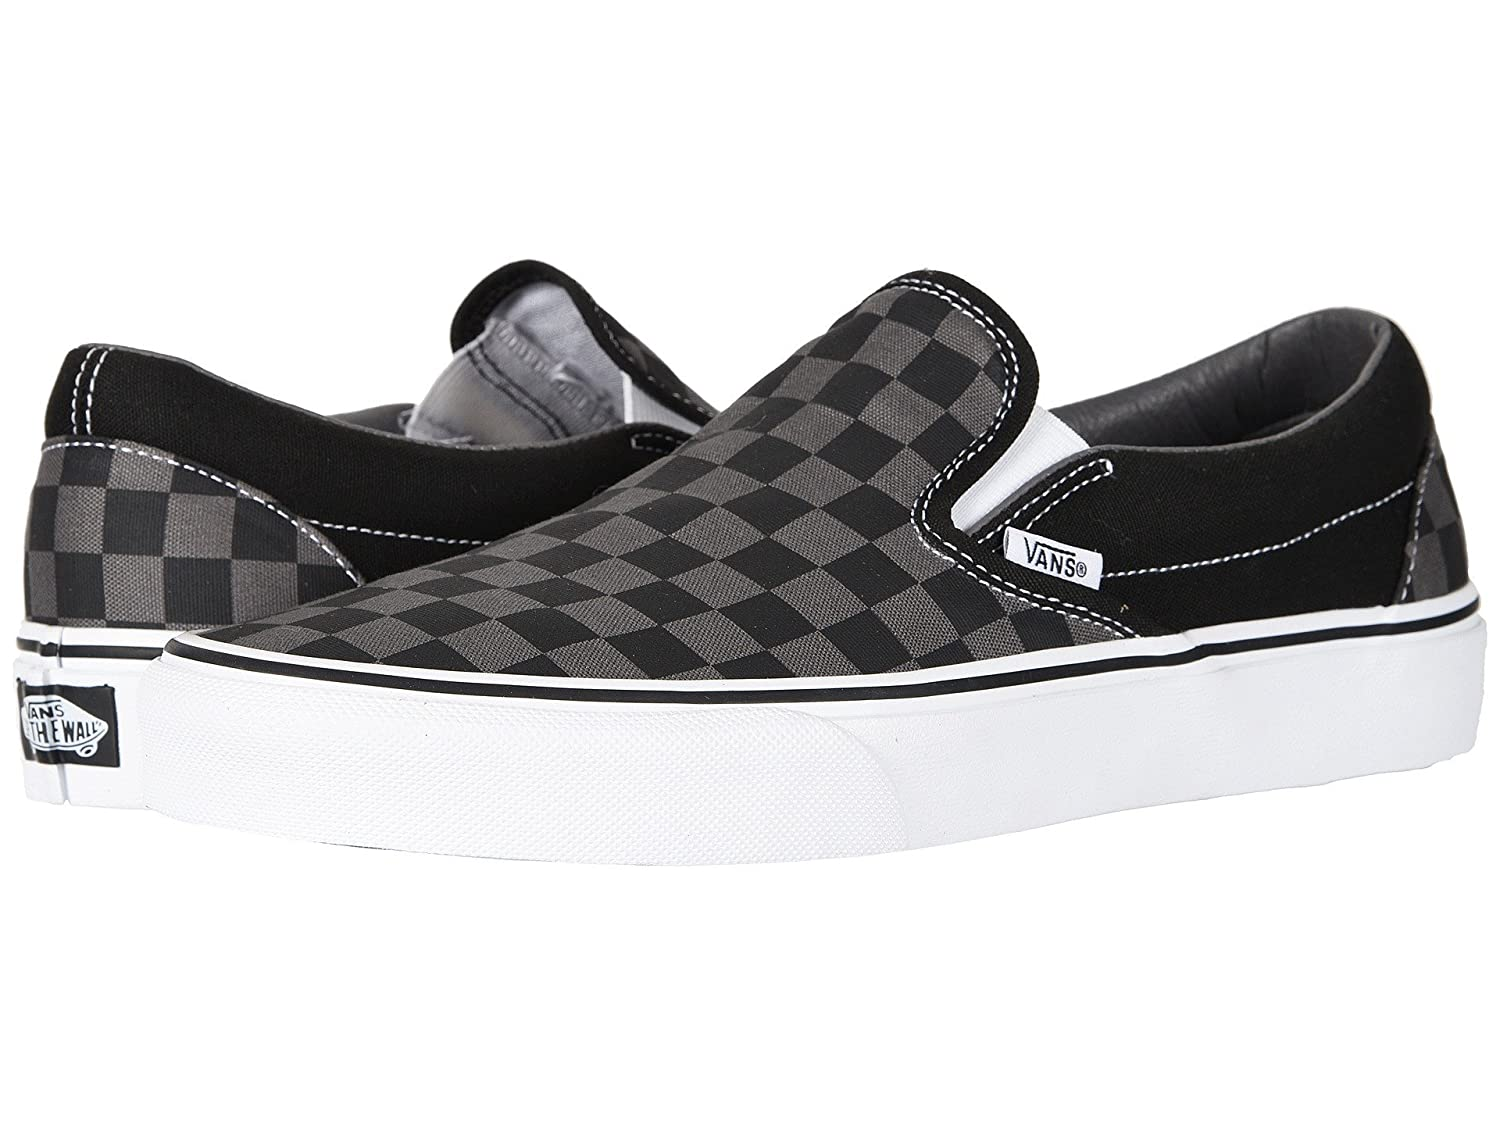 【人気商品!】 [バンズ] スニーカー Women's Black/Pewter AUTHENTIC (Pig Suede) M VN0A38EMU5O M レディース B07G3K36Q5 14 M US|Black/Pewter Checkerboard Black/Pewter Checkerboard 14 M US, 鳥羽市:25c0f24d --- svecha37.ru